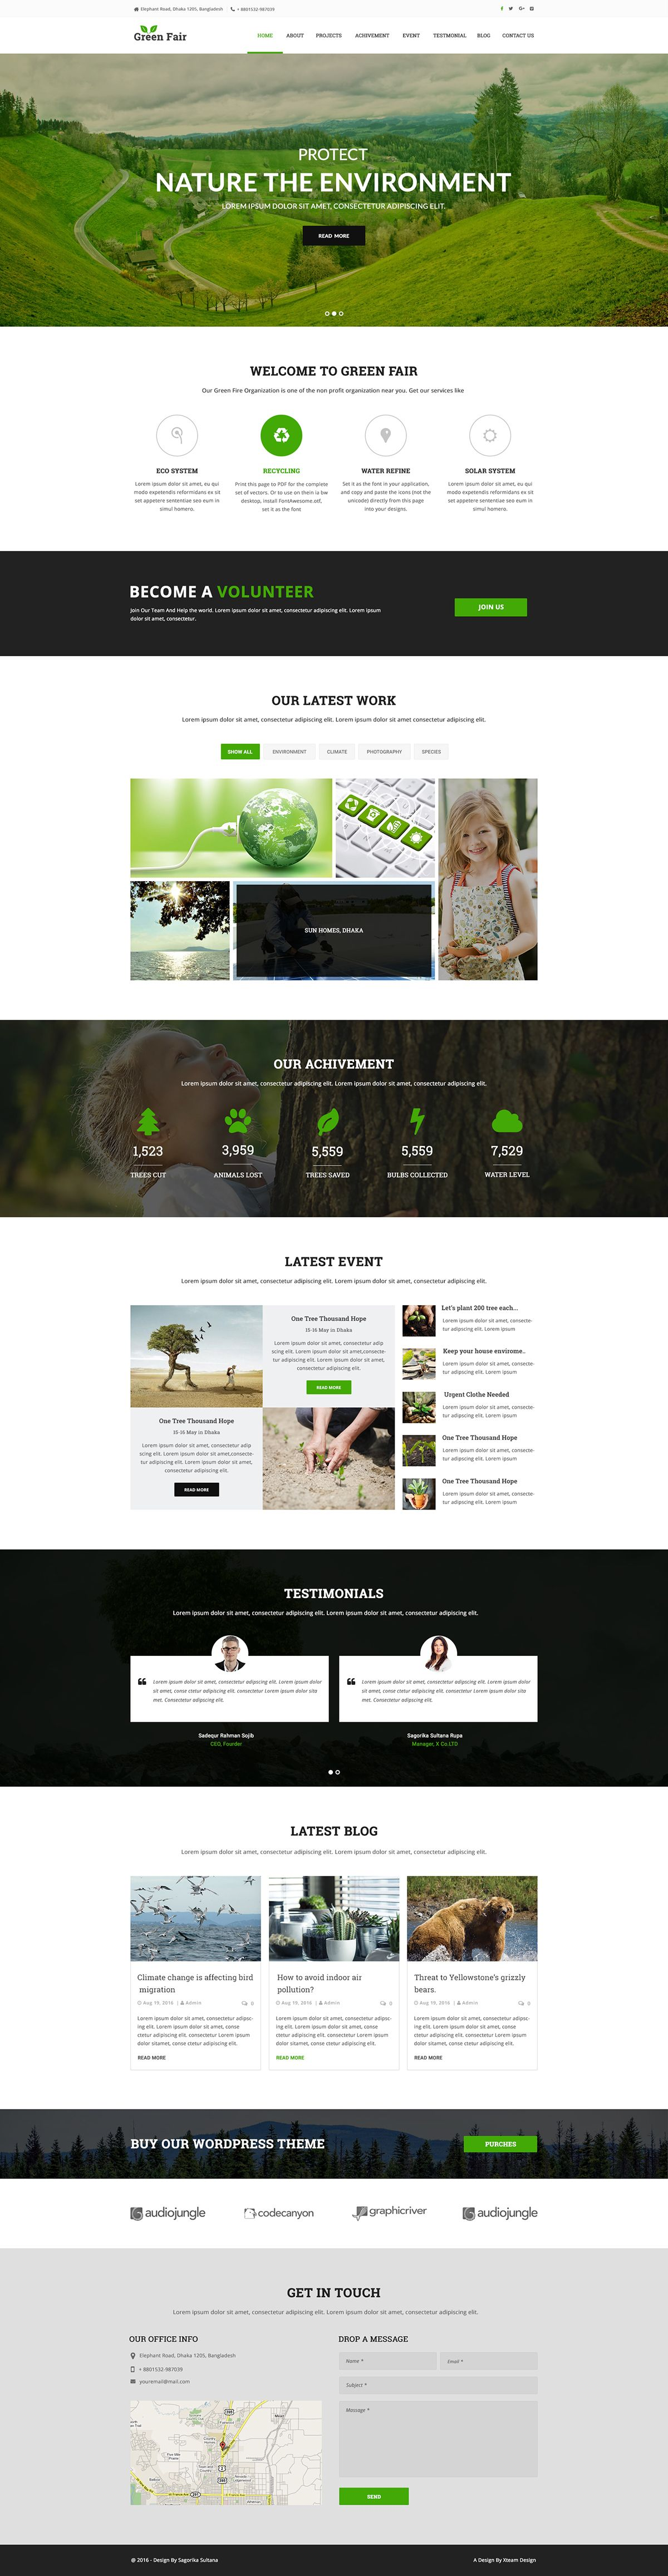 Green Fair - Free Eco/Natural PSD Template on Behance | Web Design ...